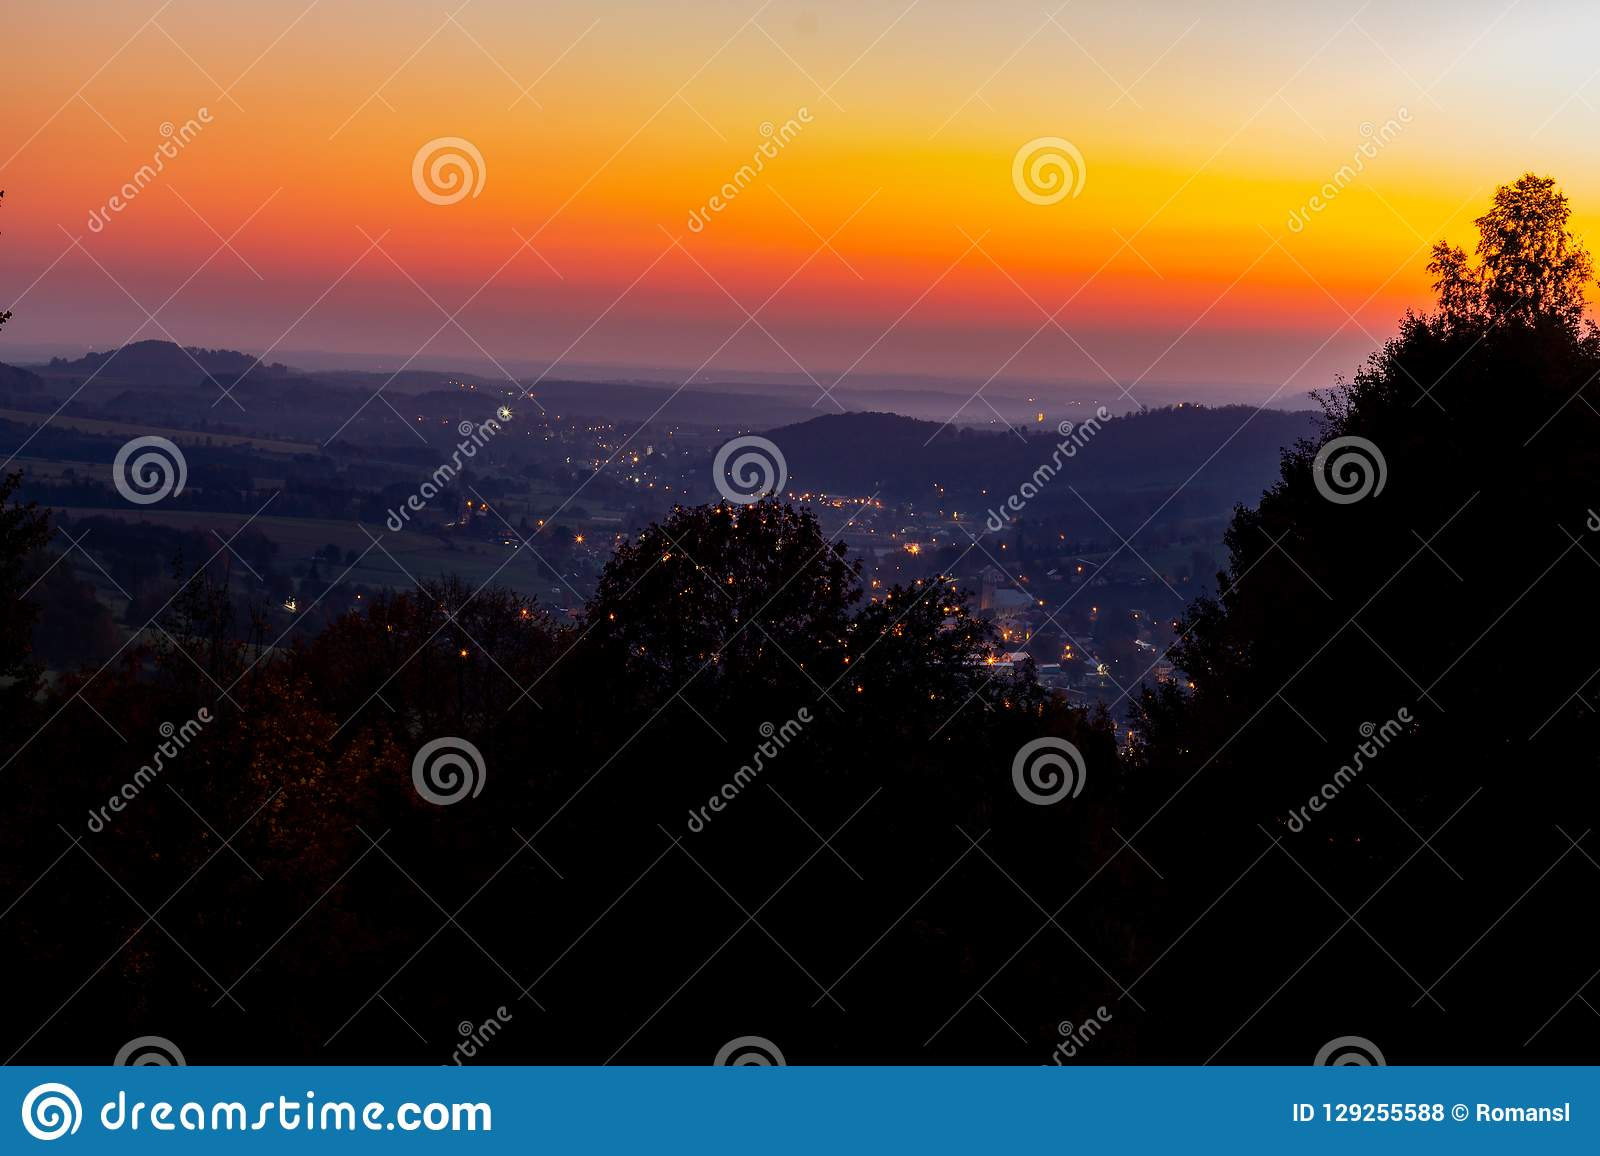 Horizon line of orange sky and clouds with beautiful golden orange sunset time with light sunrise nature